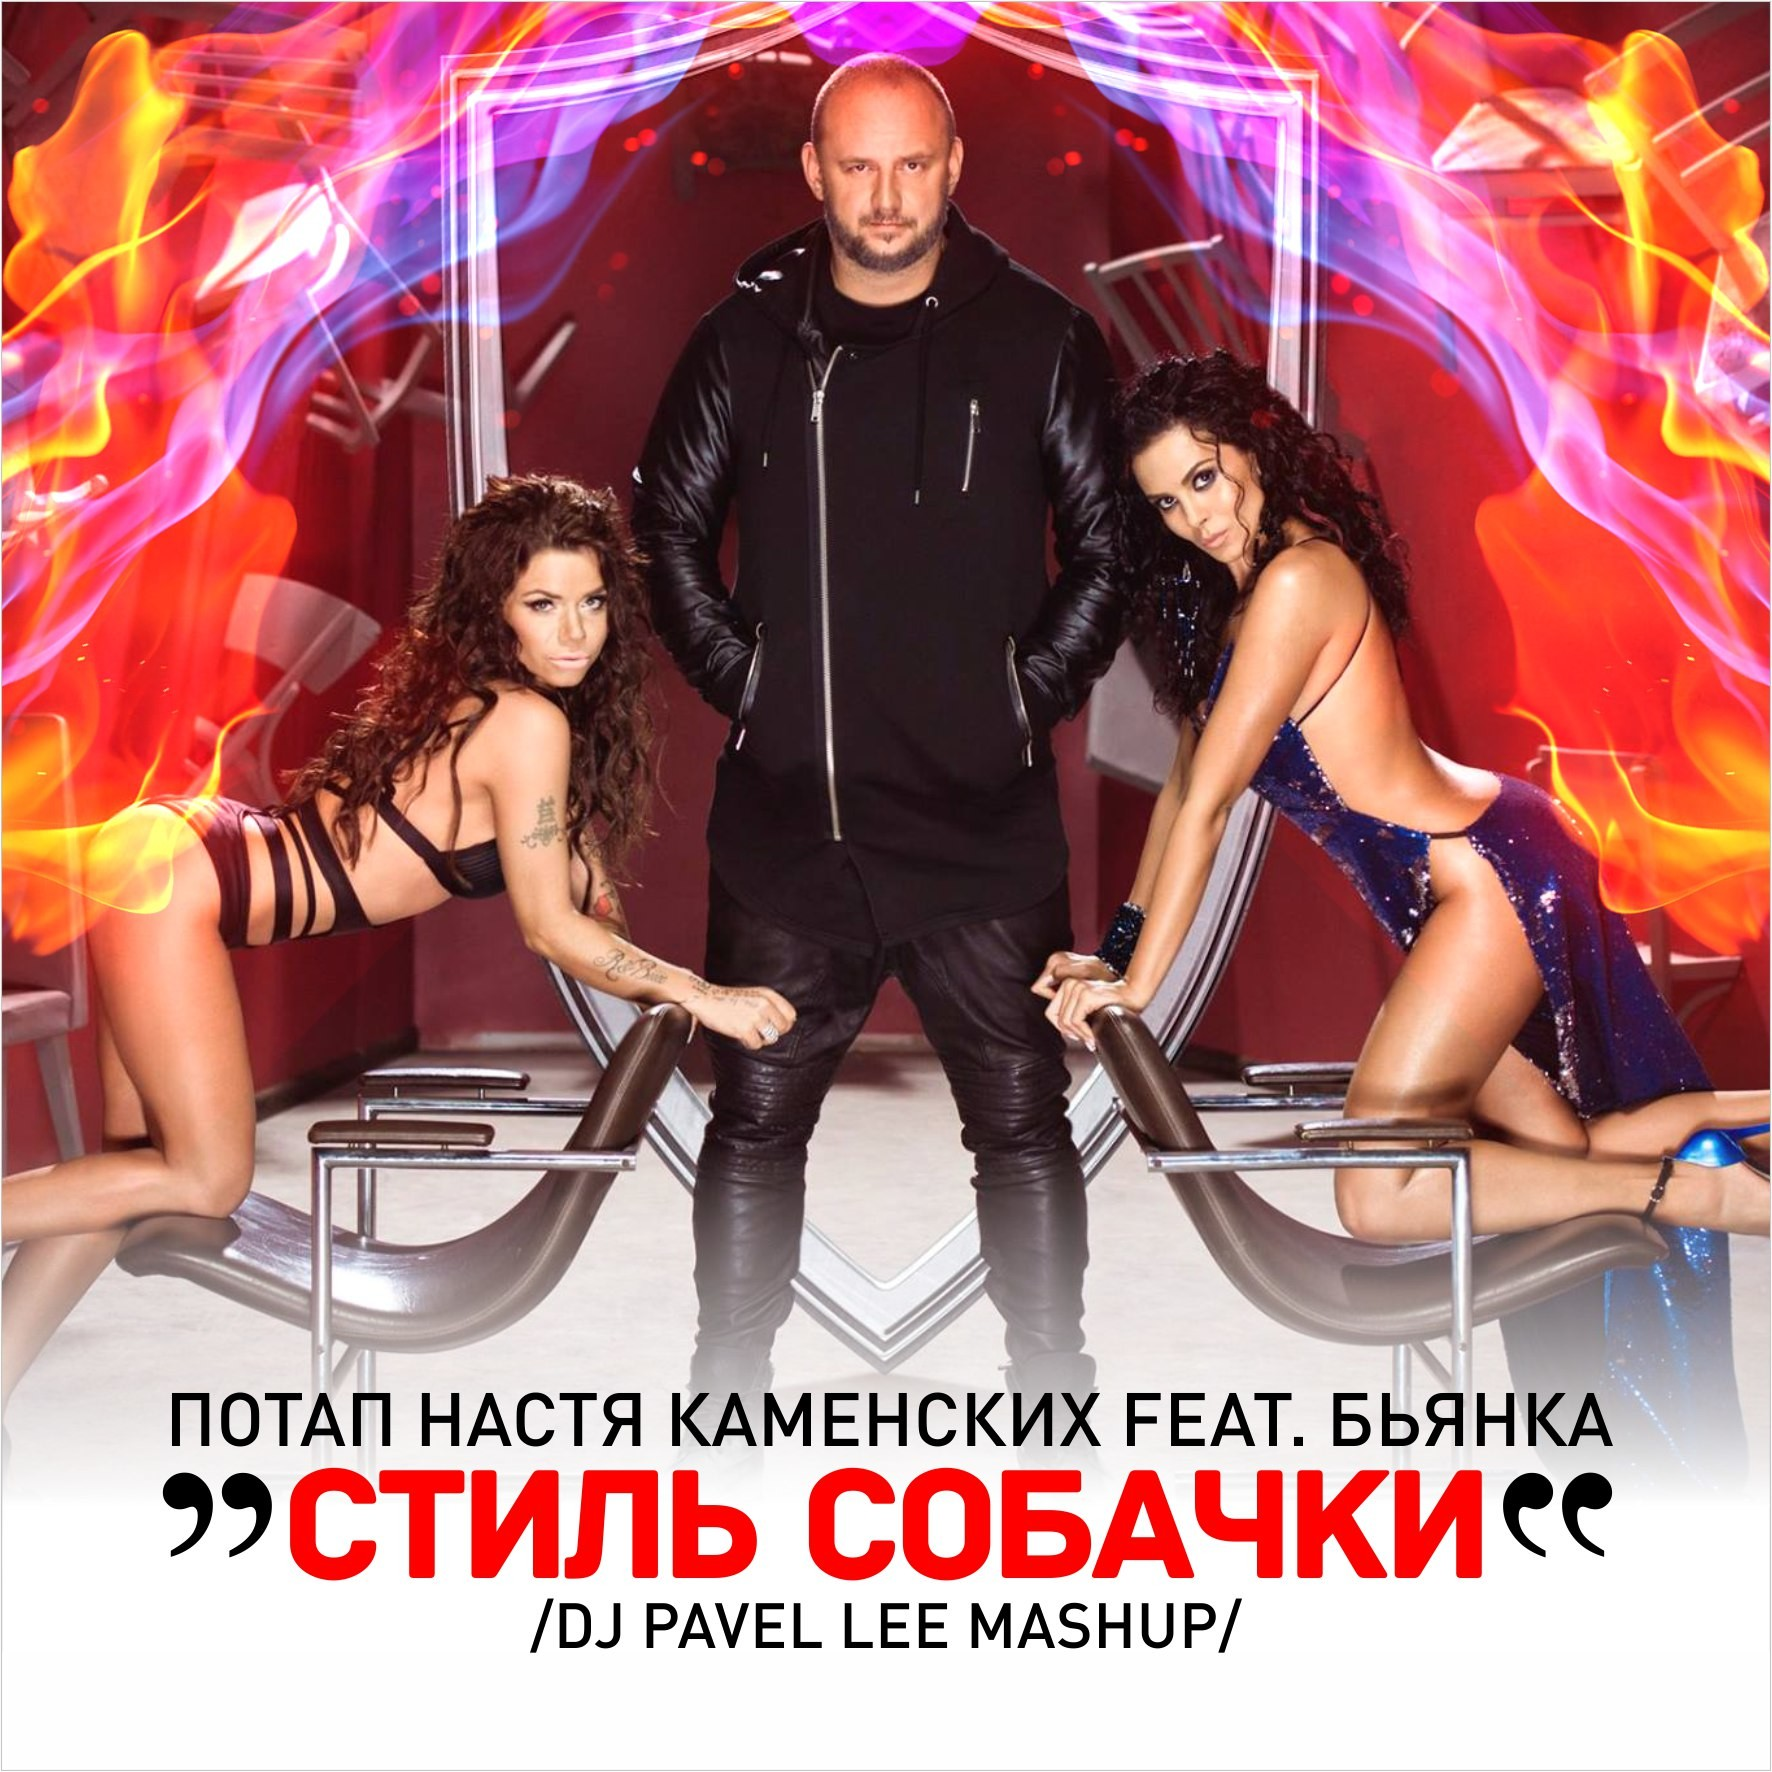 Taki Taki Dj Snake Remix Song Download: Потап Настя Каменских Feat. Бьянка